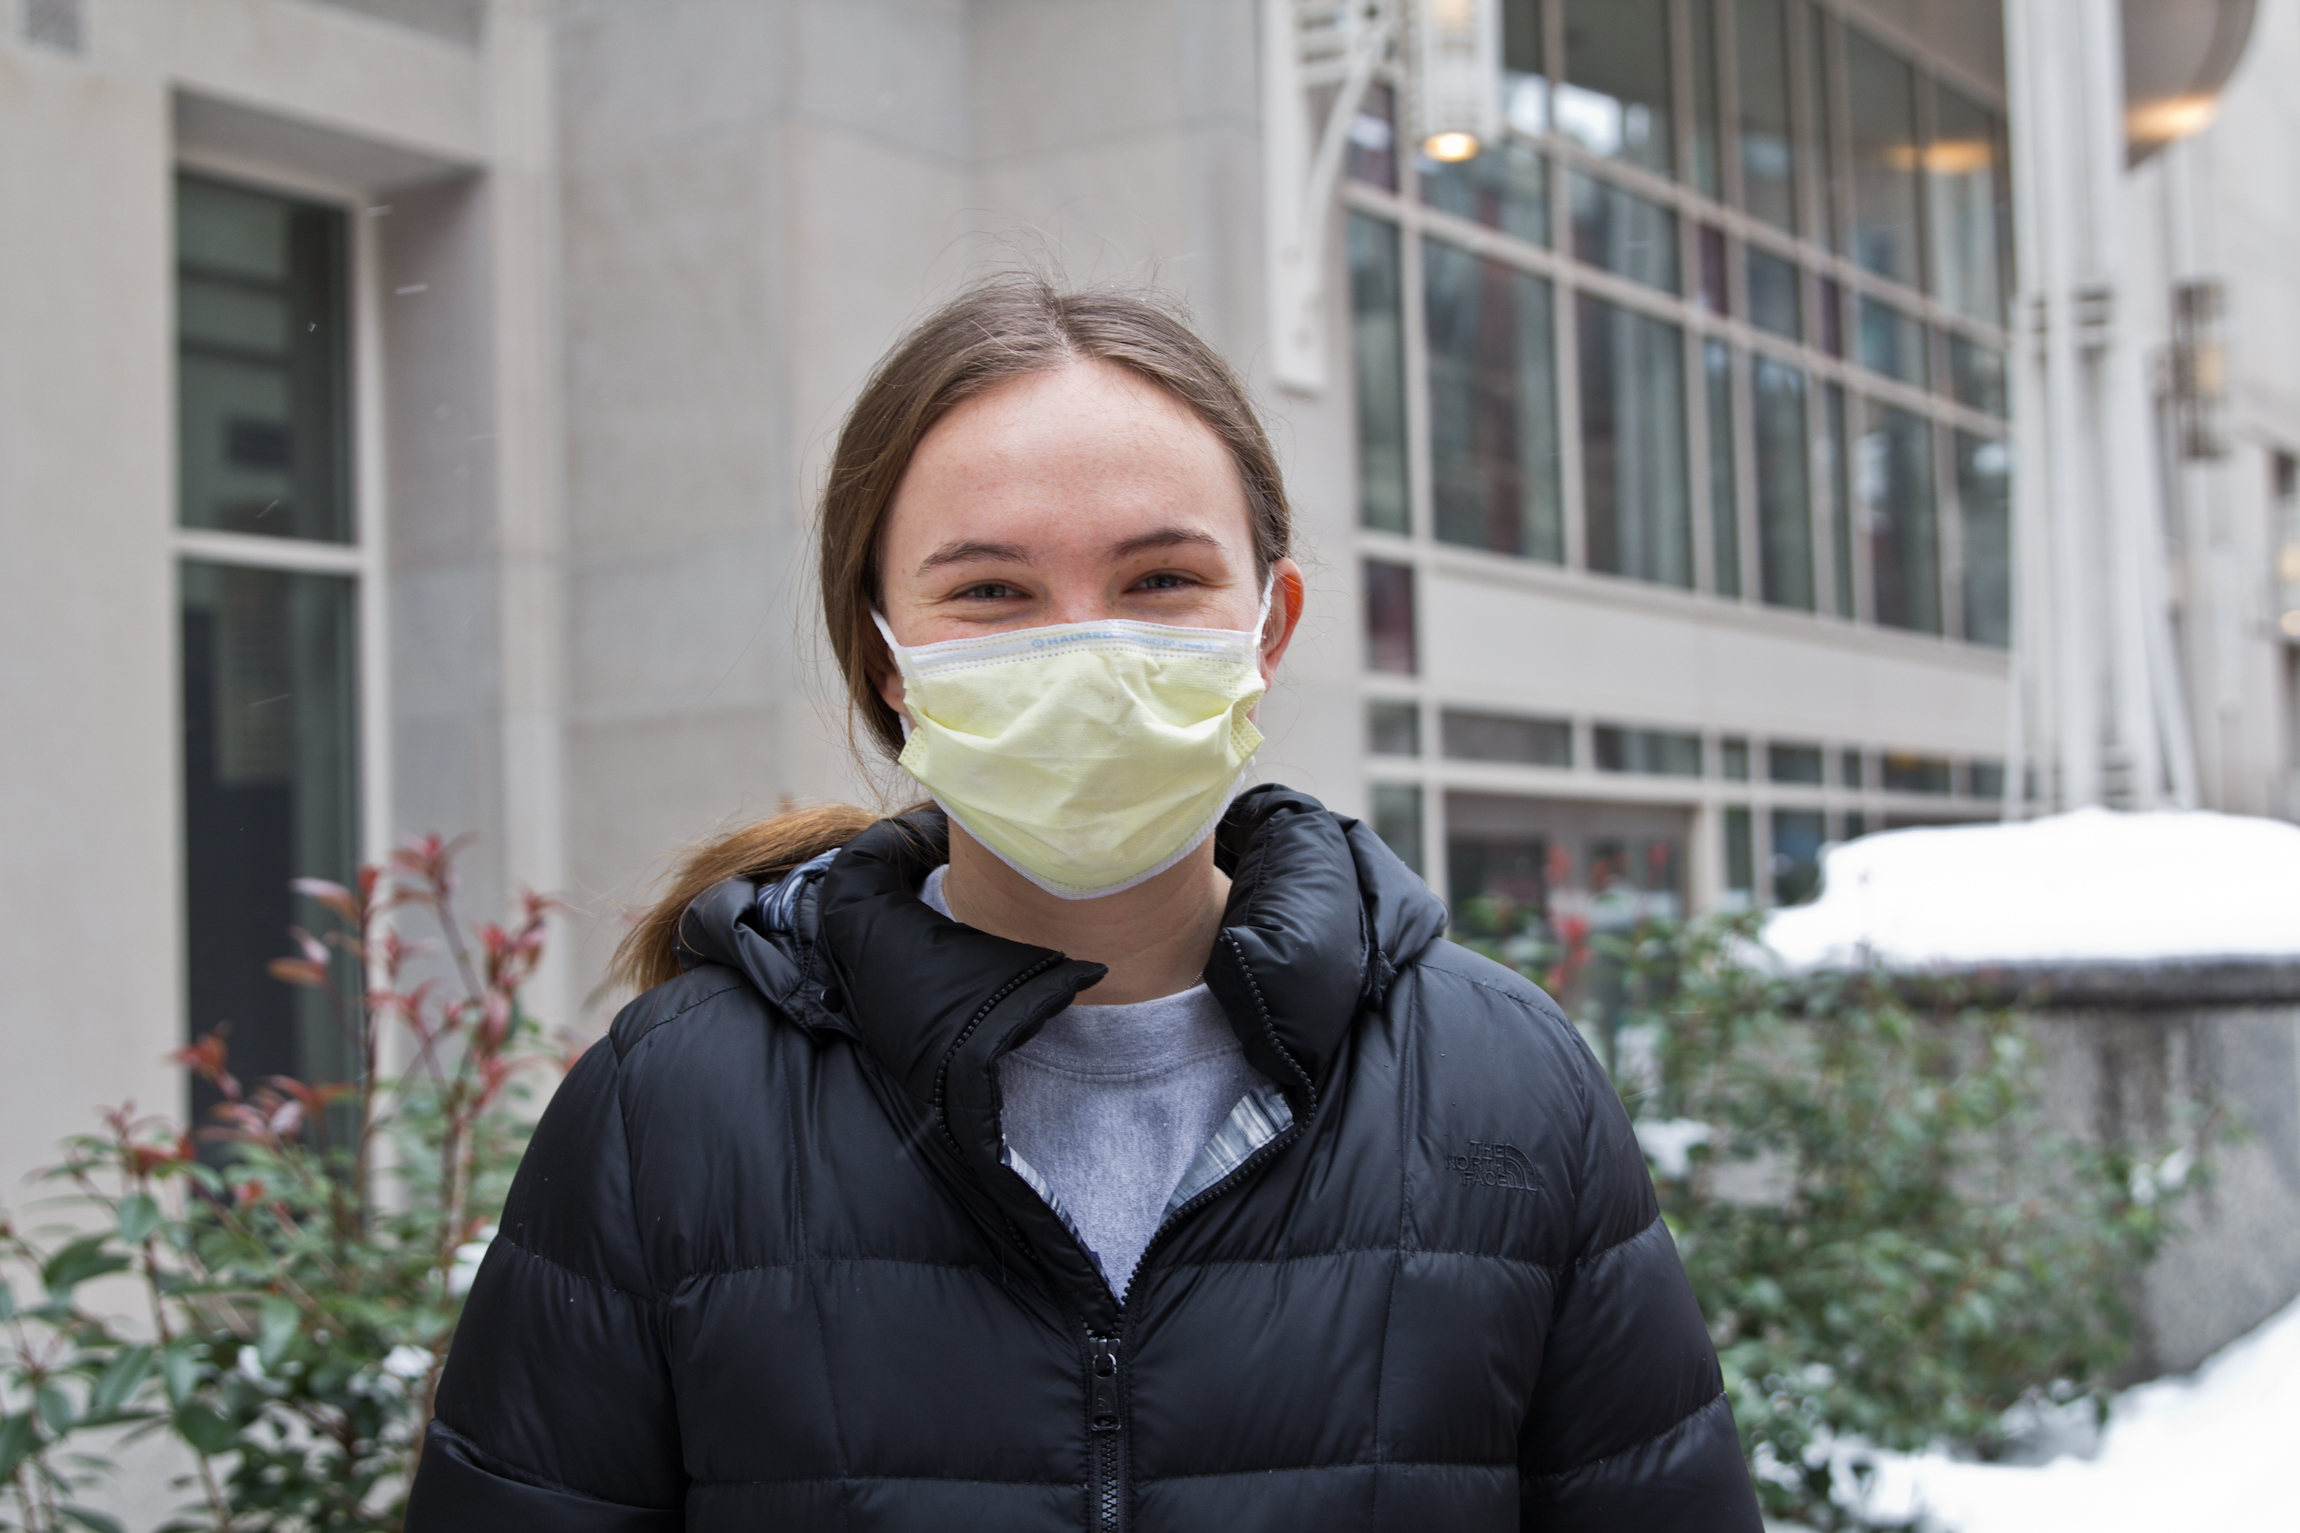 Ellie Cline, wearing a face mask, stands outside the vaccine clinic